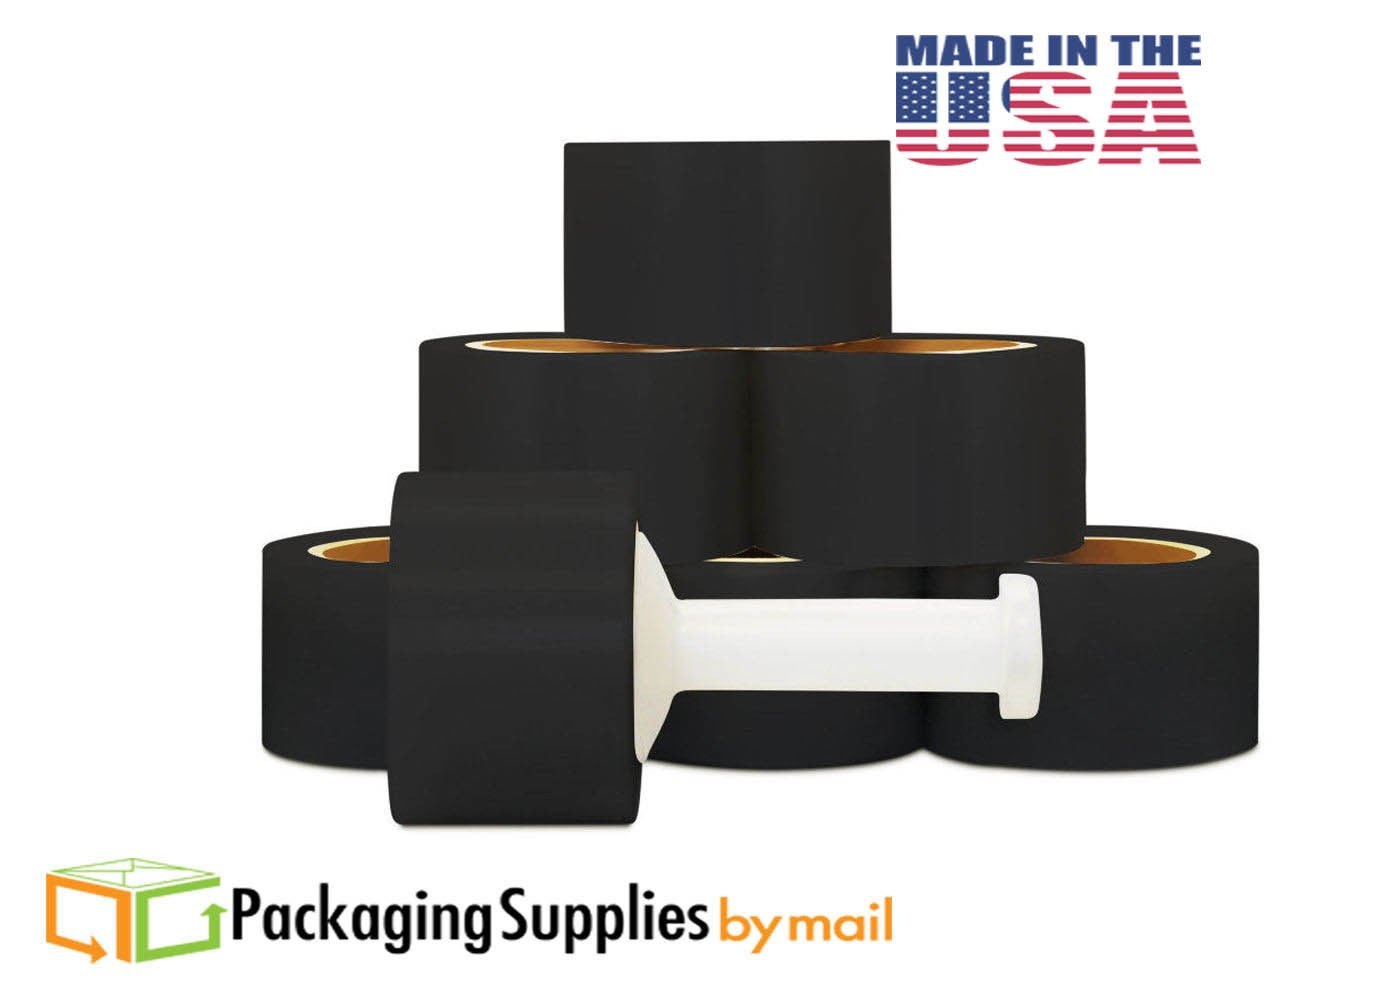 Cast Bundling Black Stretch Wrap Film 3 Inch x 80 Gauge x 1000 Feet 18 Rolls/Case